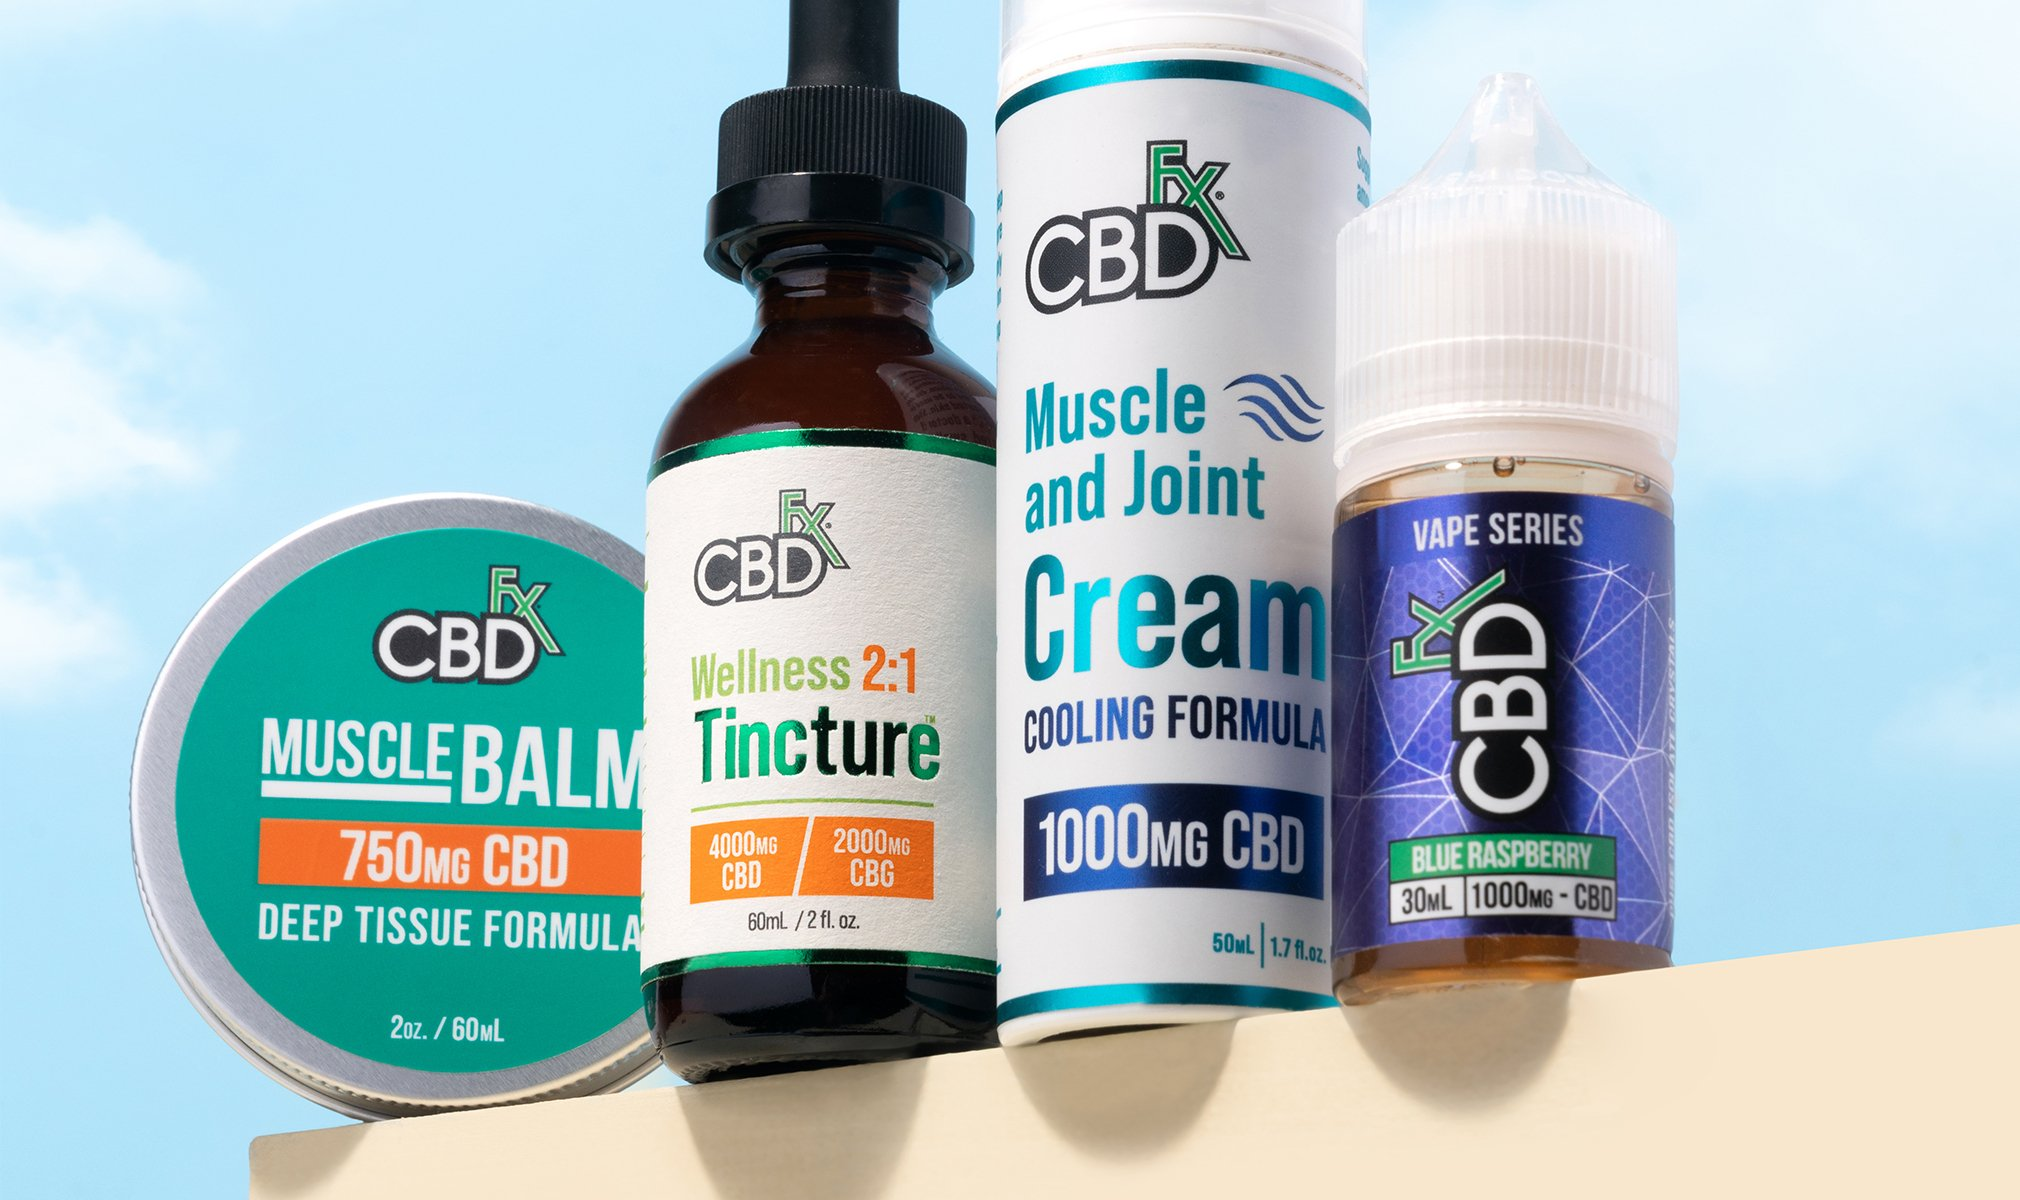 5 Surprising Facts You Should Know About CBD